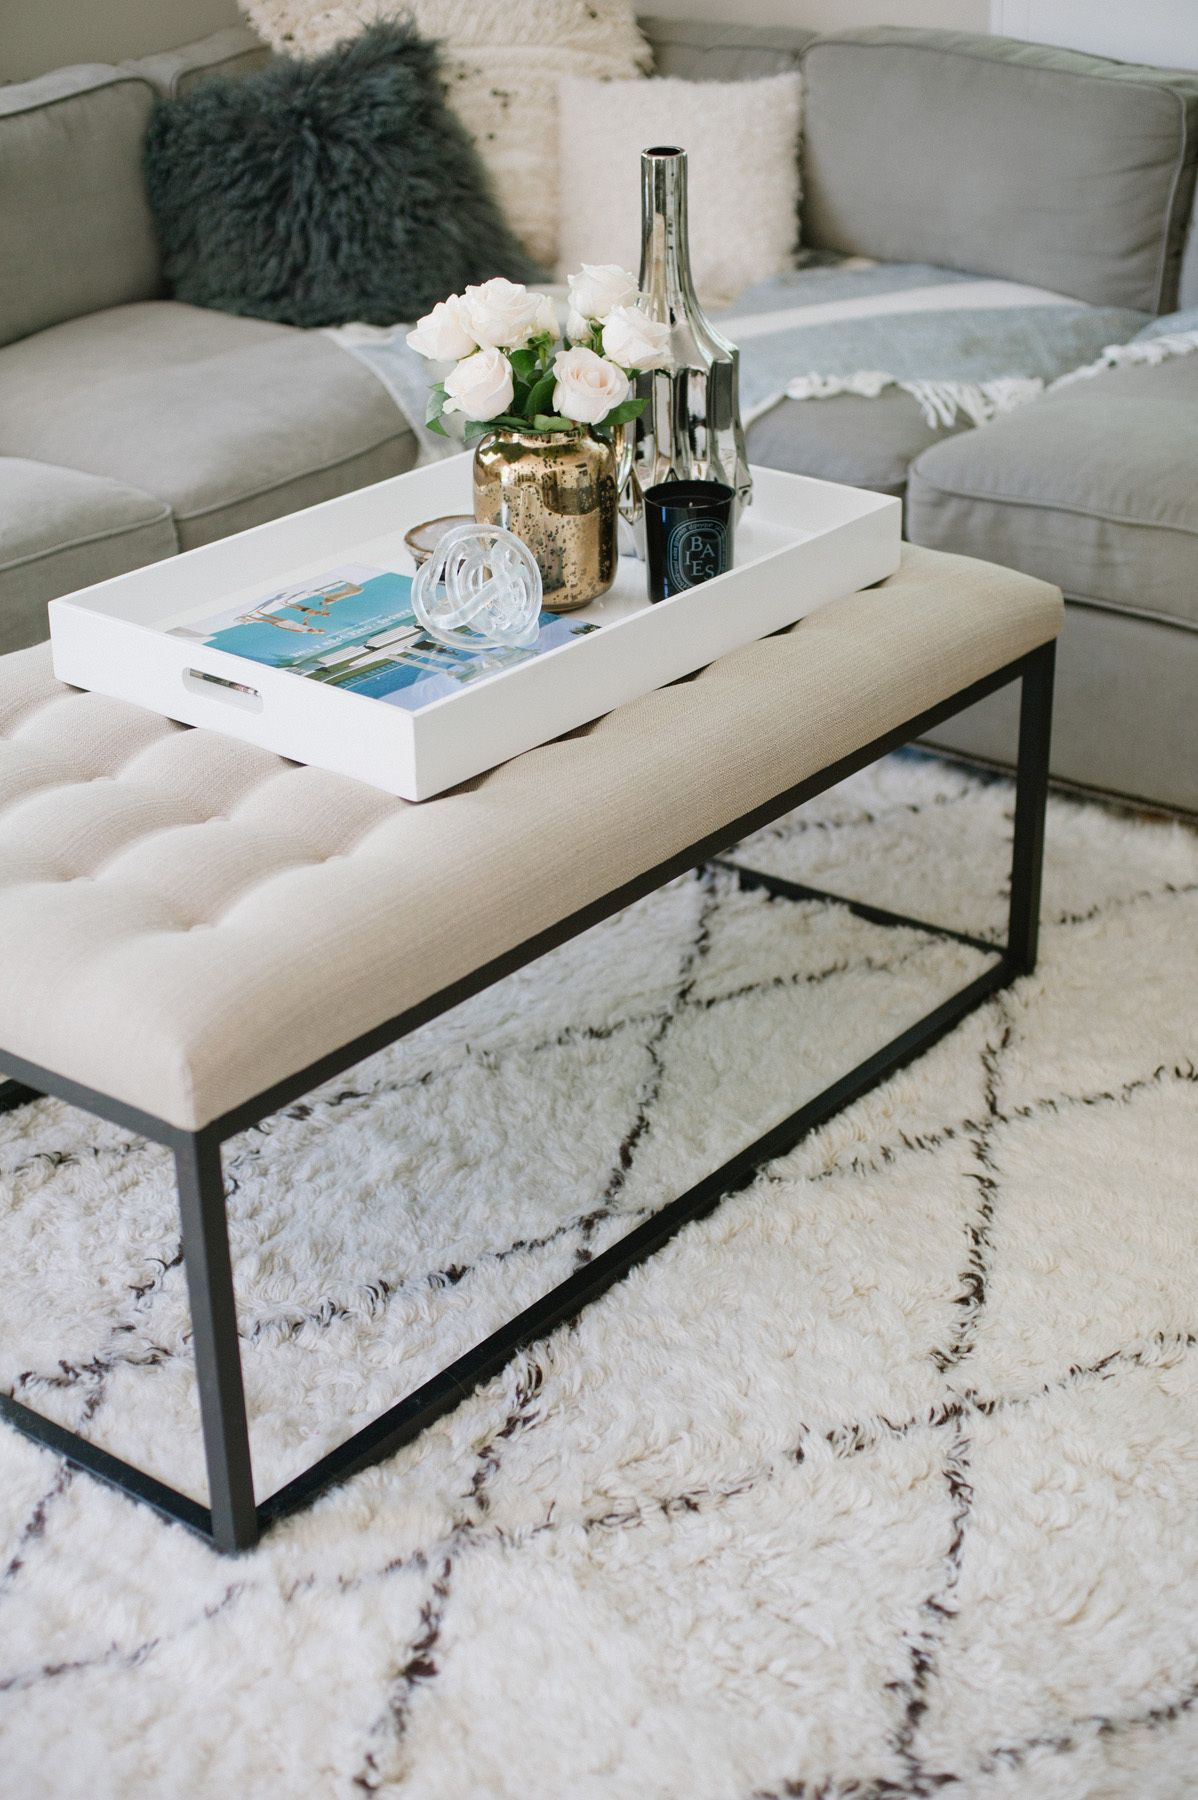 25 Tray Chic Moments You Should Steal Home coffee tables